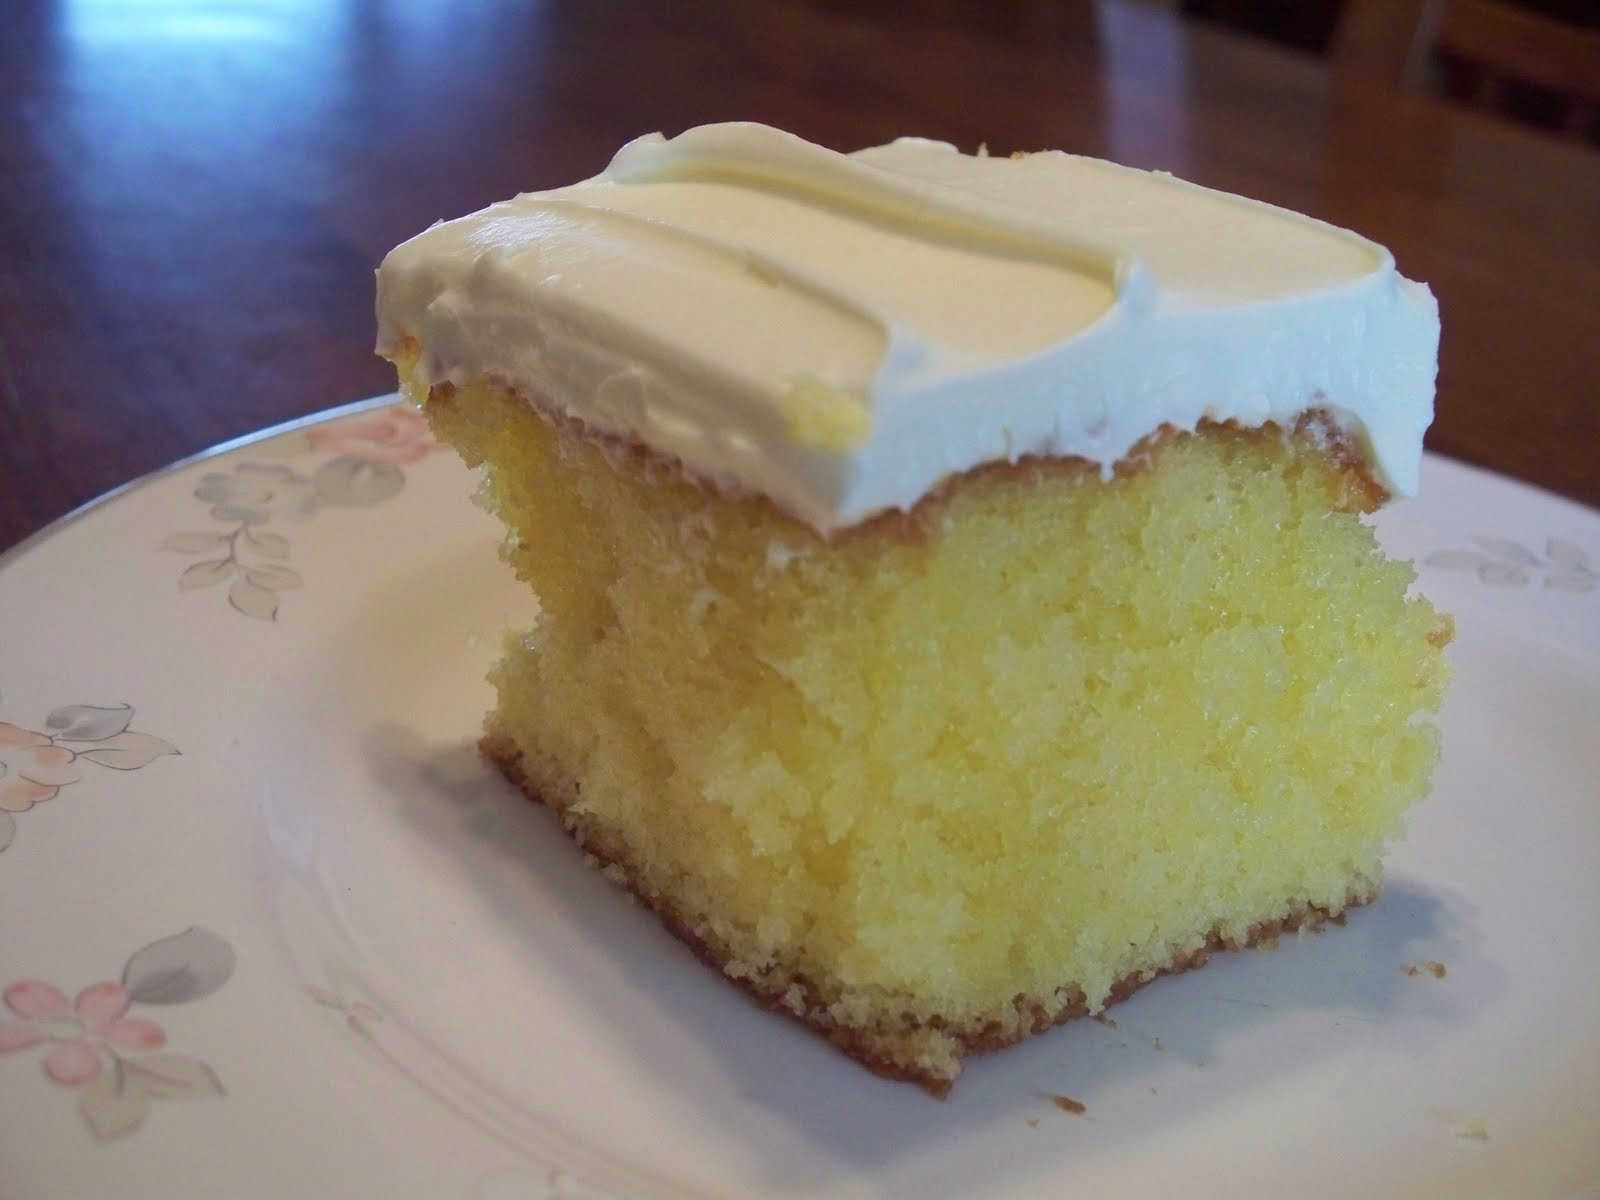 Betty Crocker Lemon Jello Cake